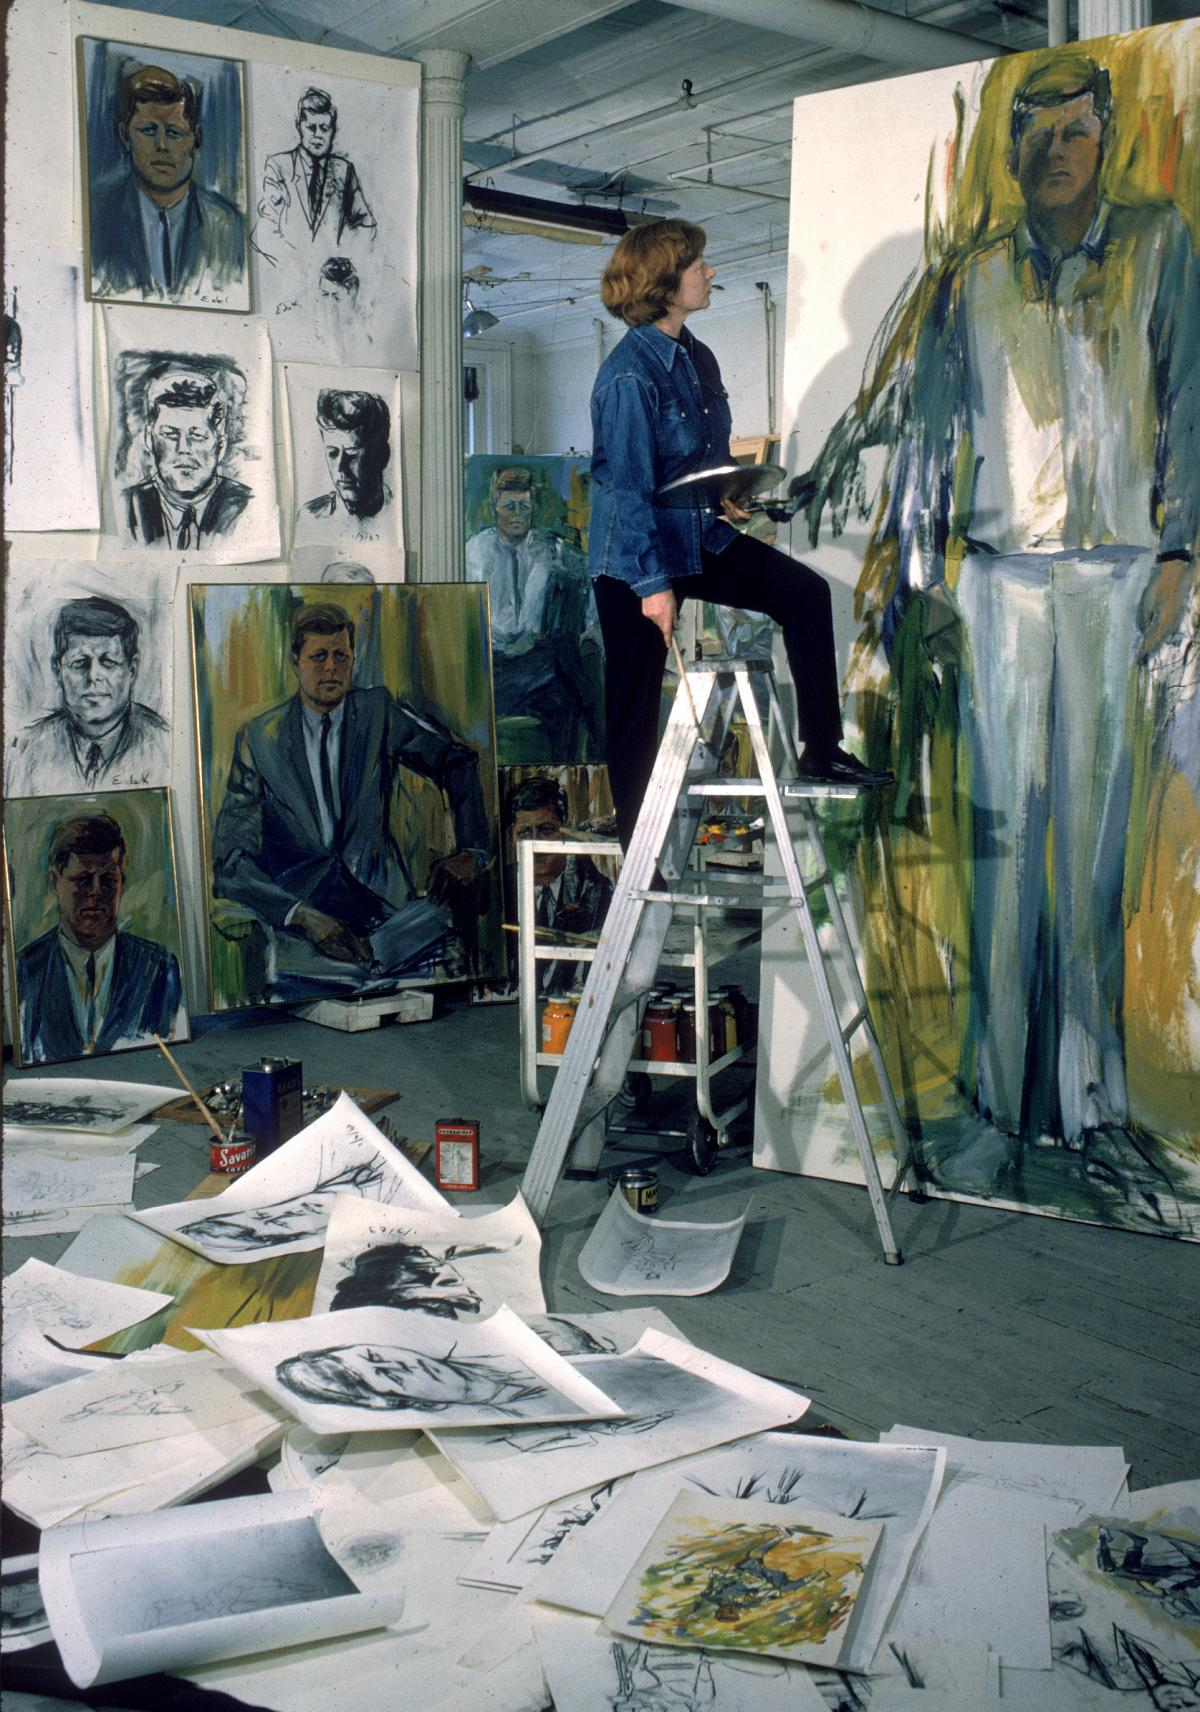 De Kooning made dozens of drawings, sketches and paintings of John F. Kennedy in 1963.